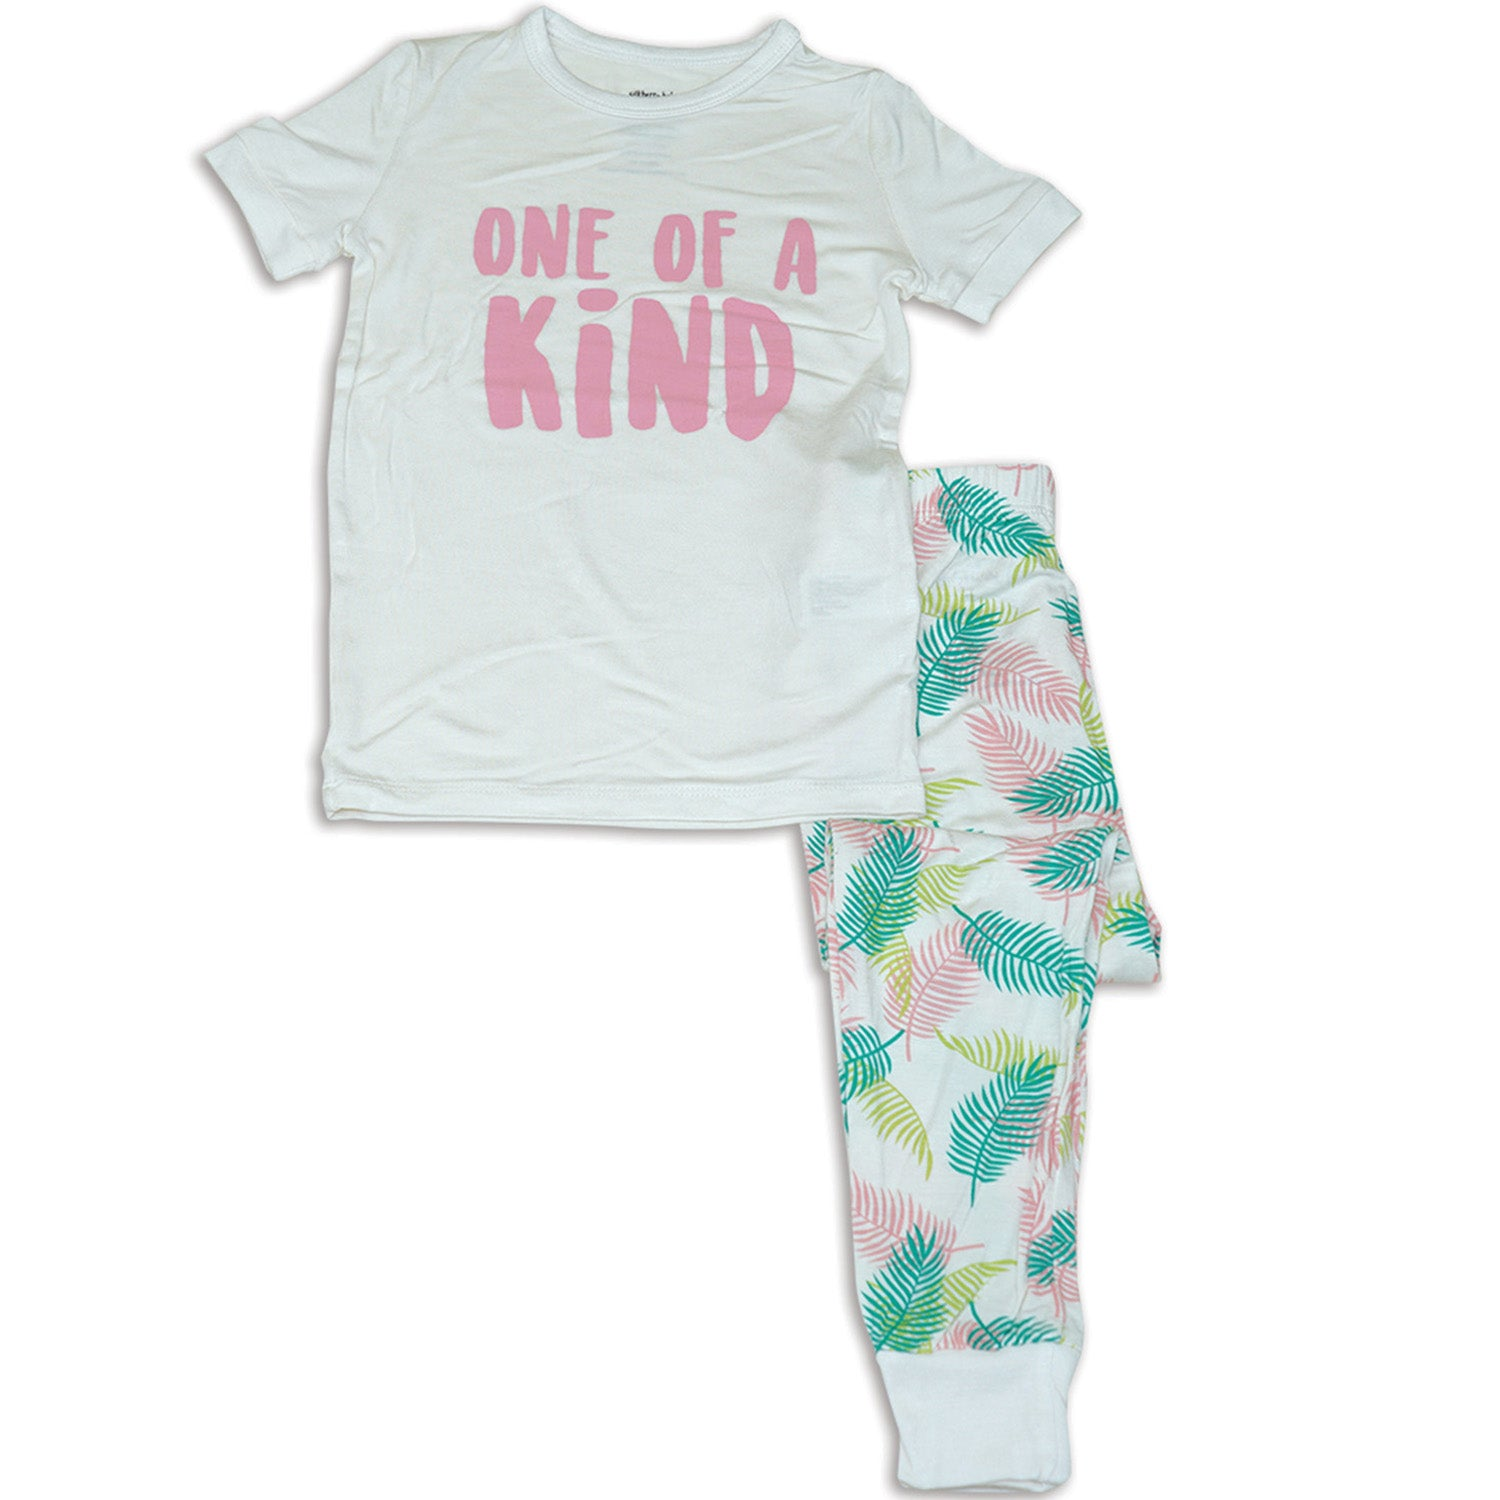 Silkberry Baby Bamboo Short Sleeve Pajama Set - Tropical Palm